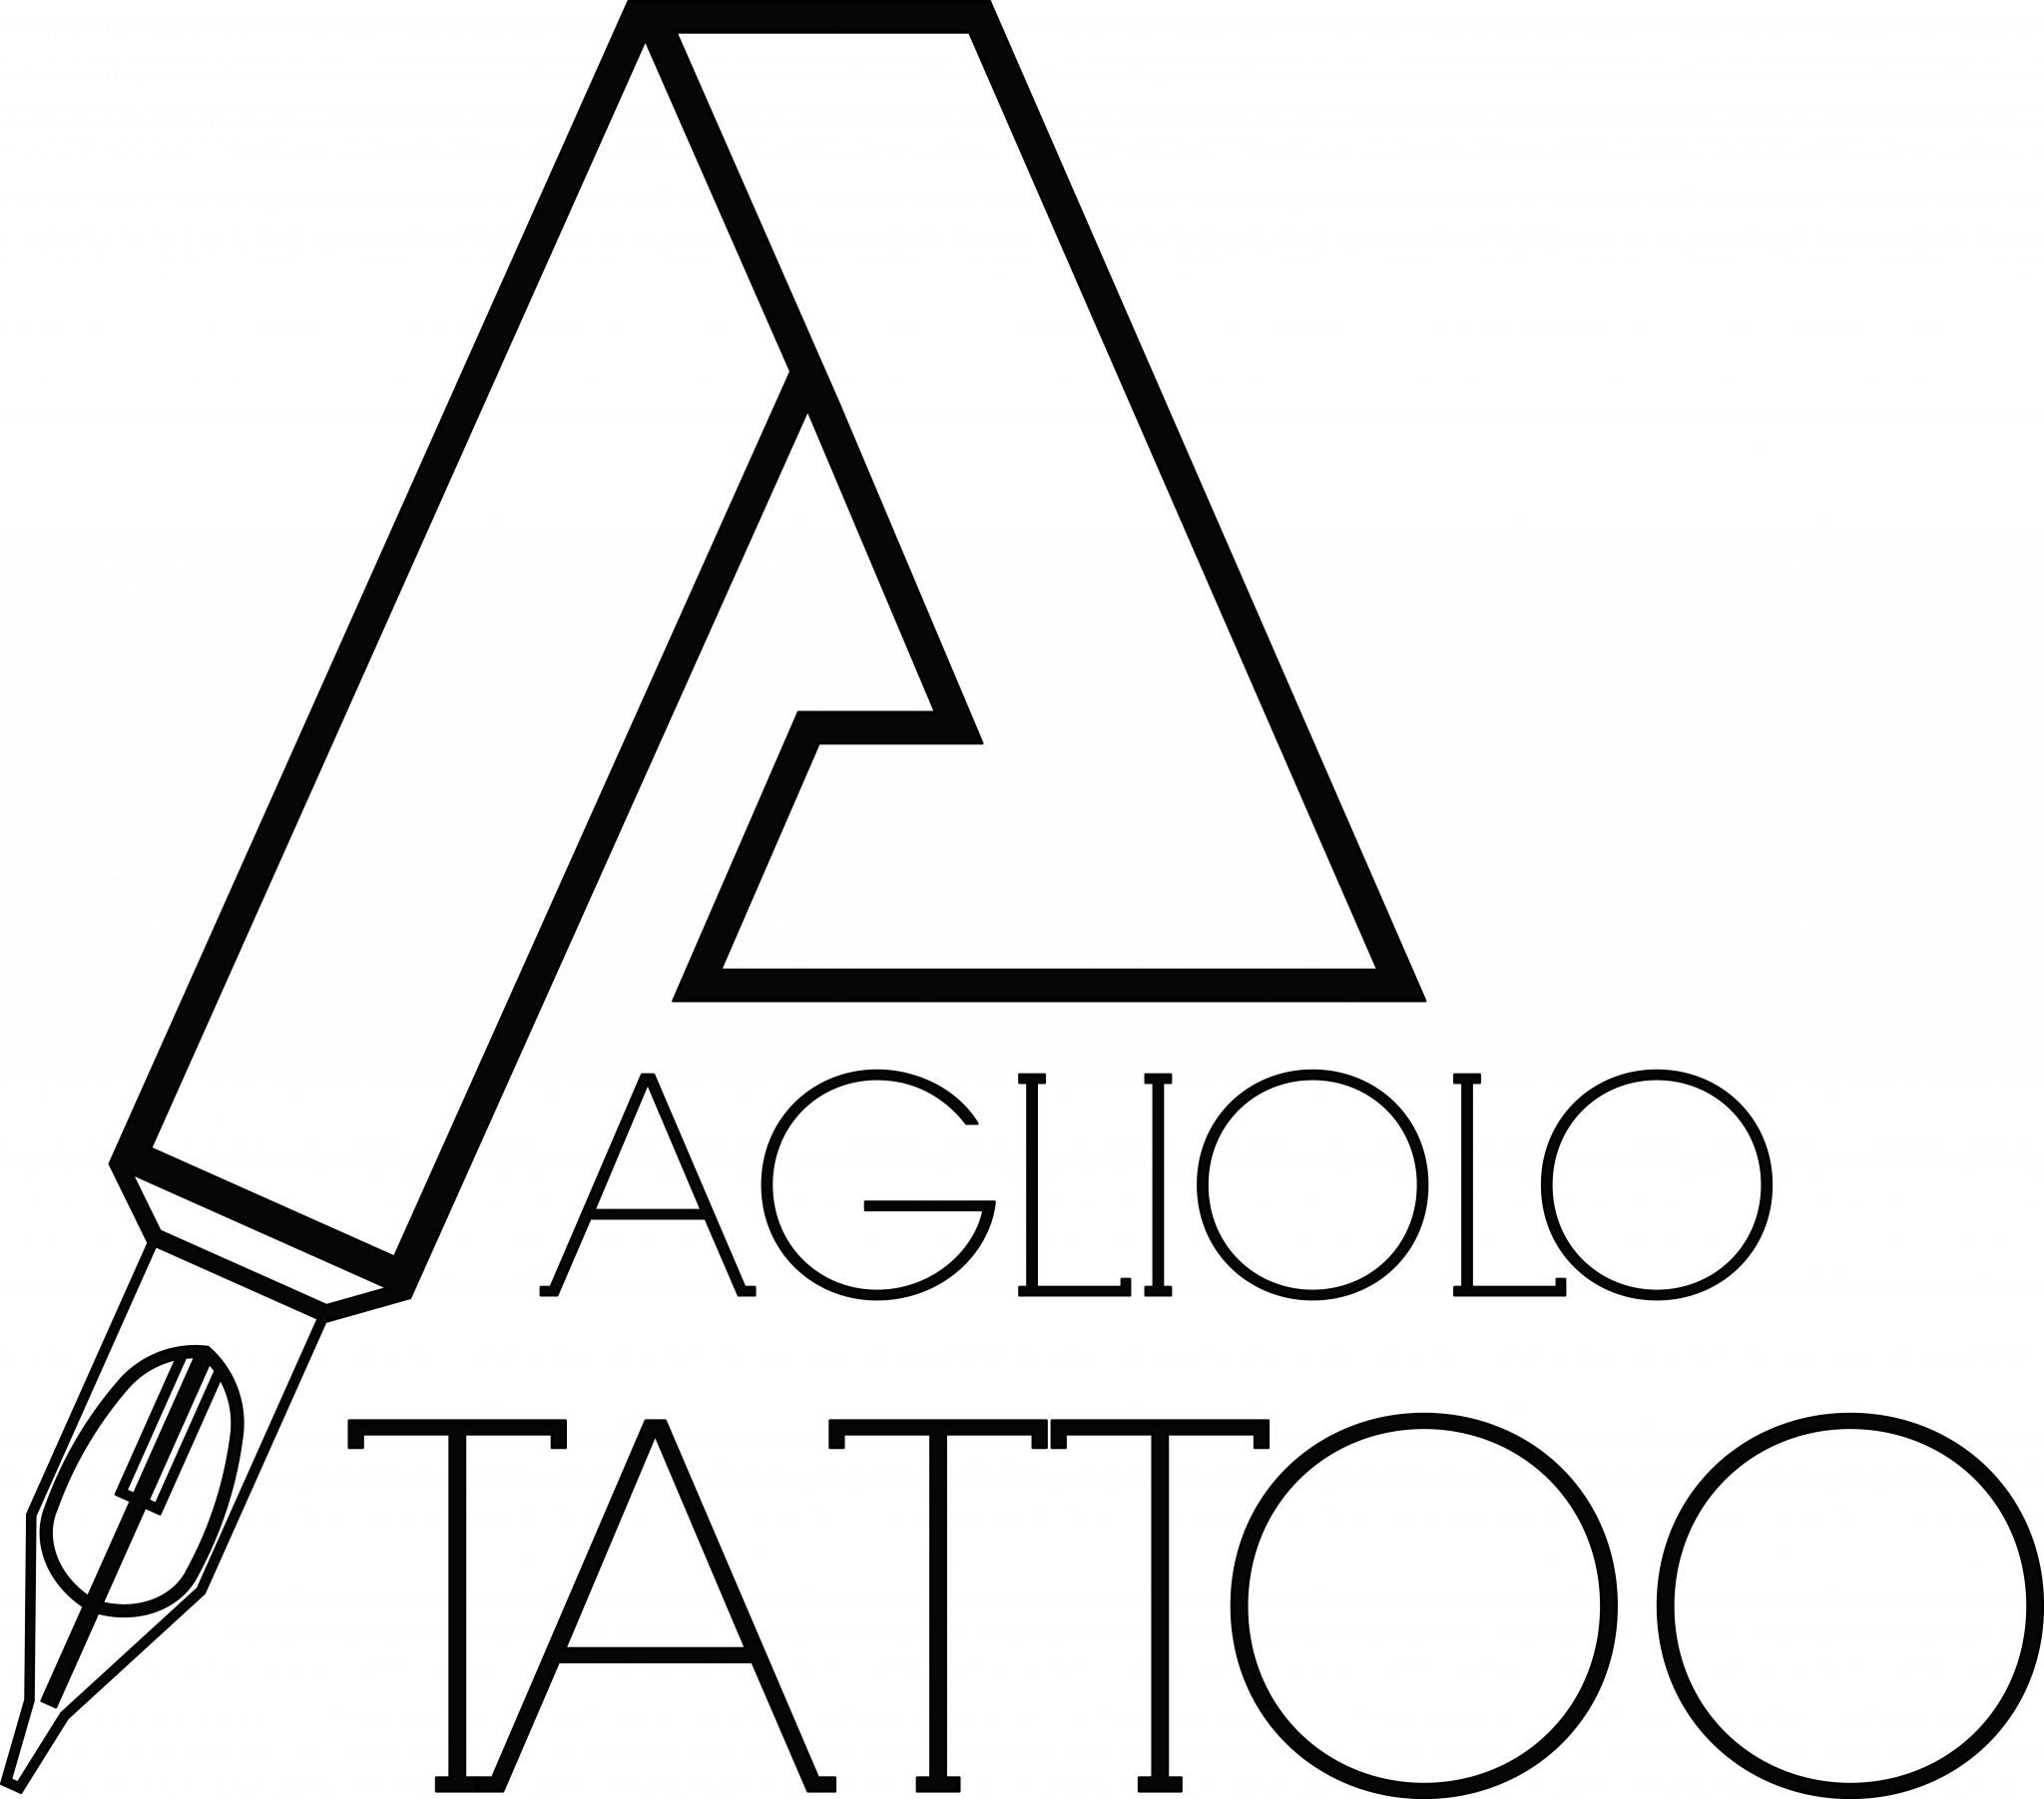 Tattoo Studio Wetzikon, Agliolo Tattoo